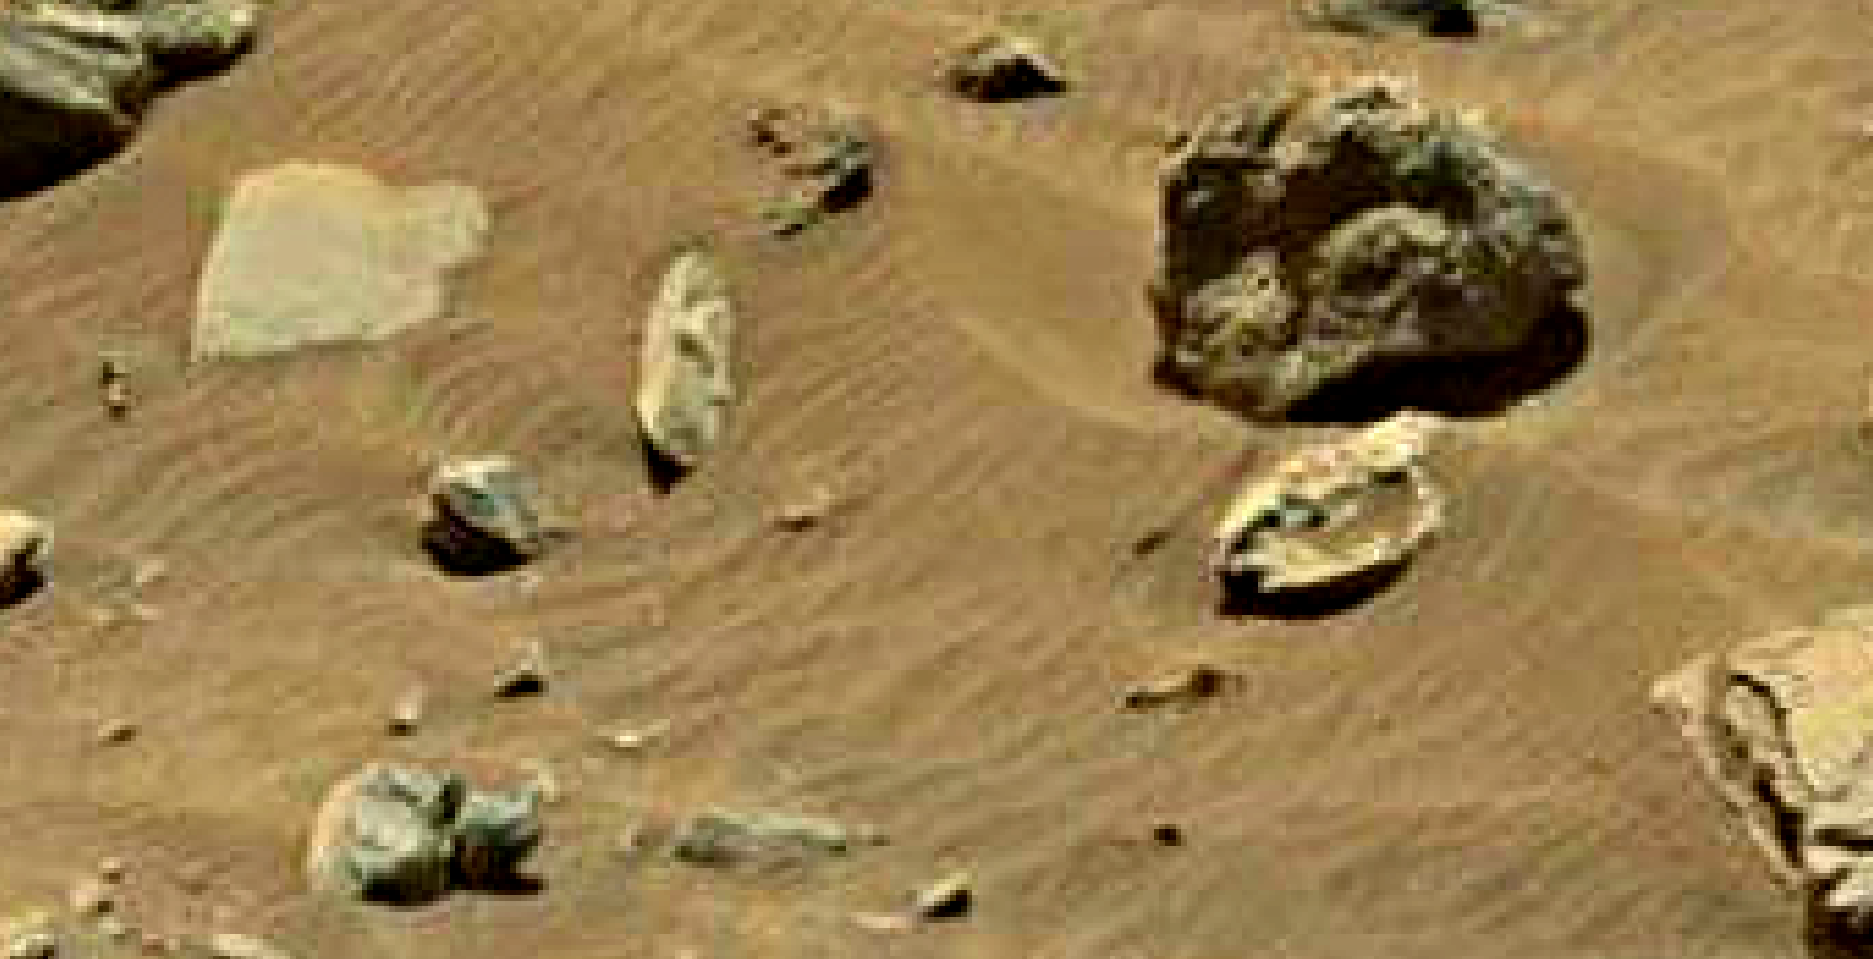 mars sol 1399 anomaly artifacts 6 was life on mars